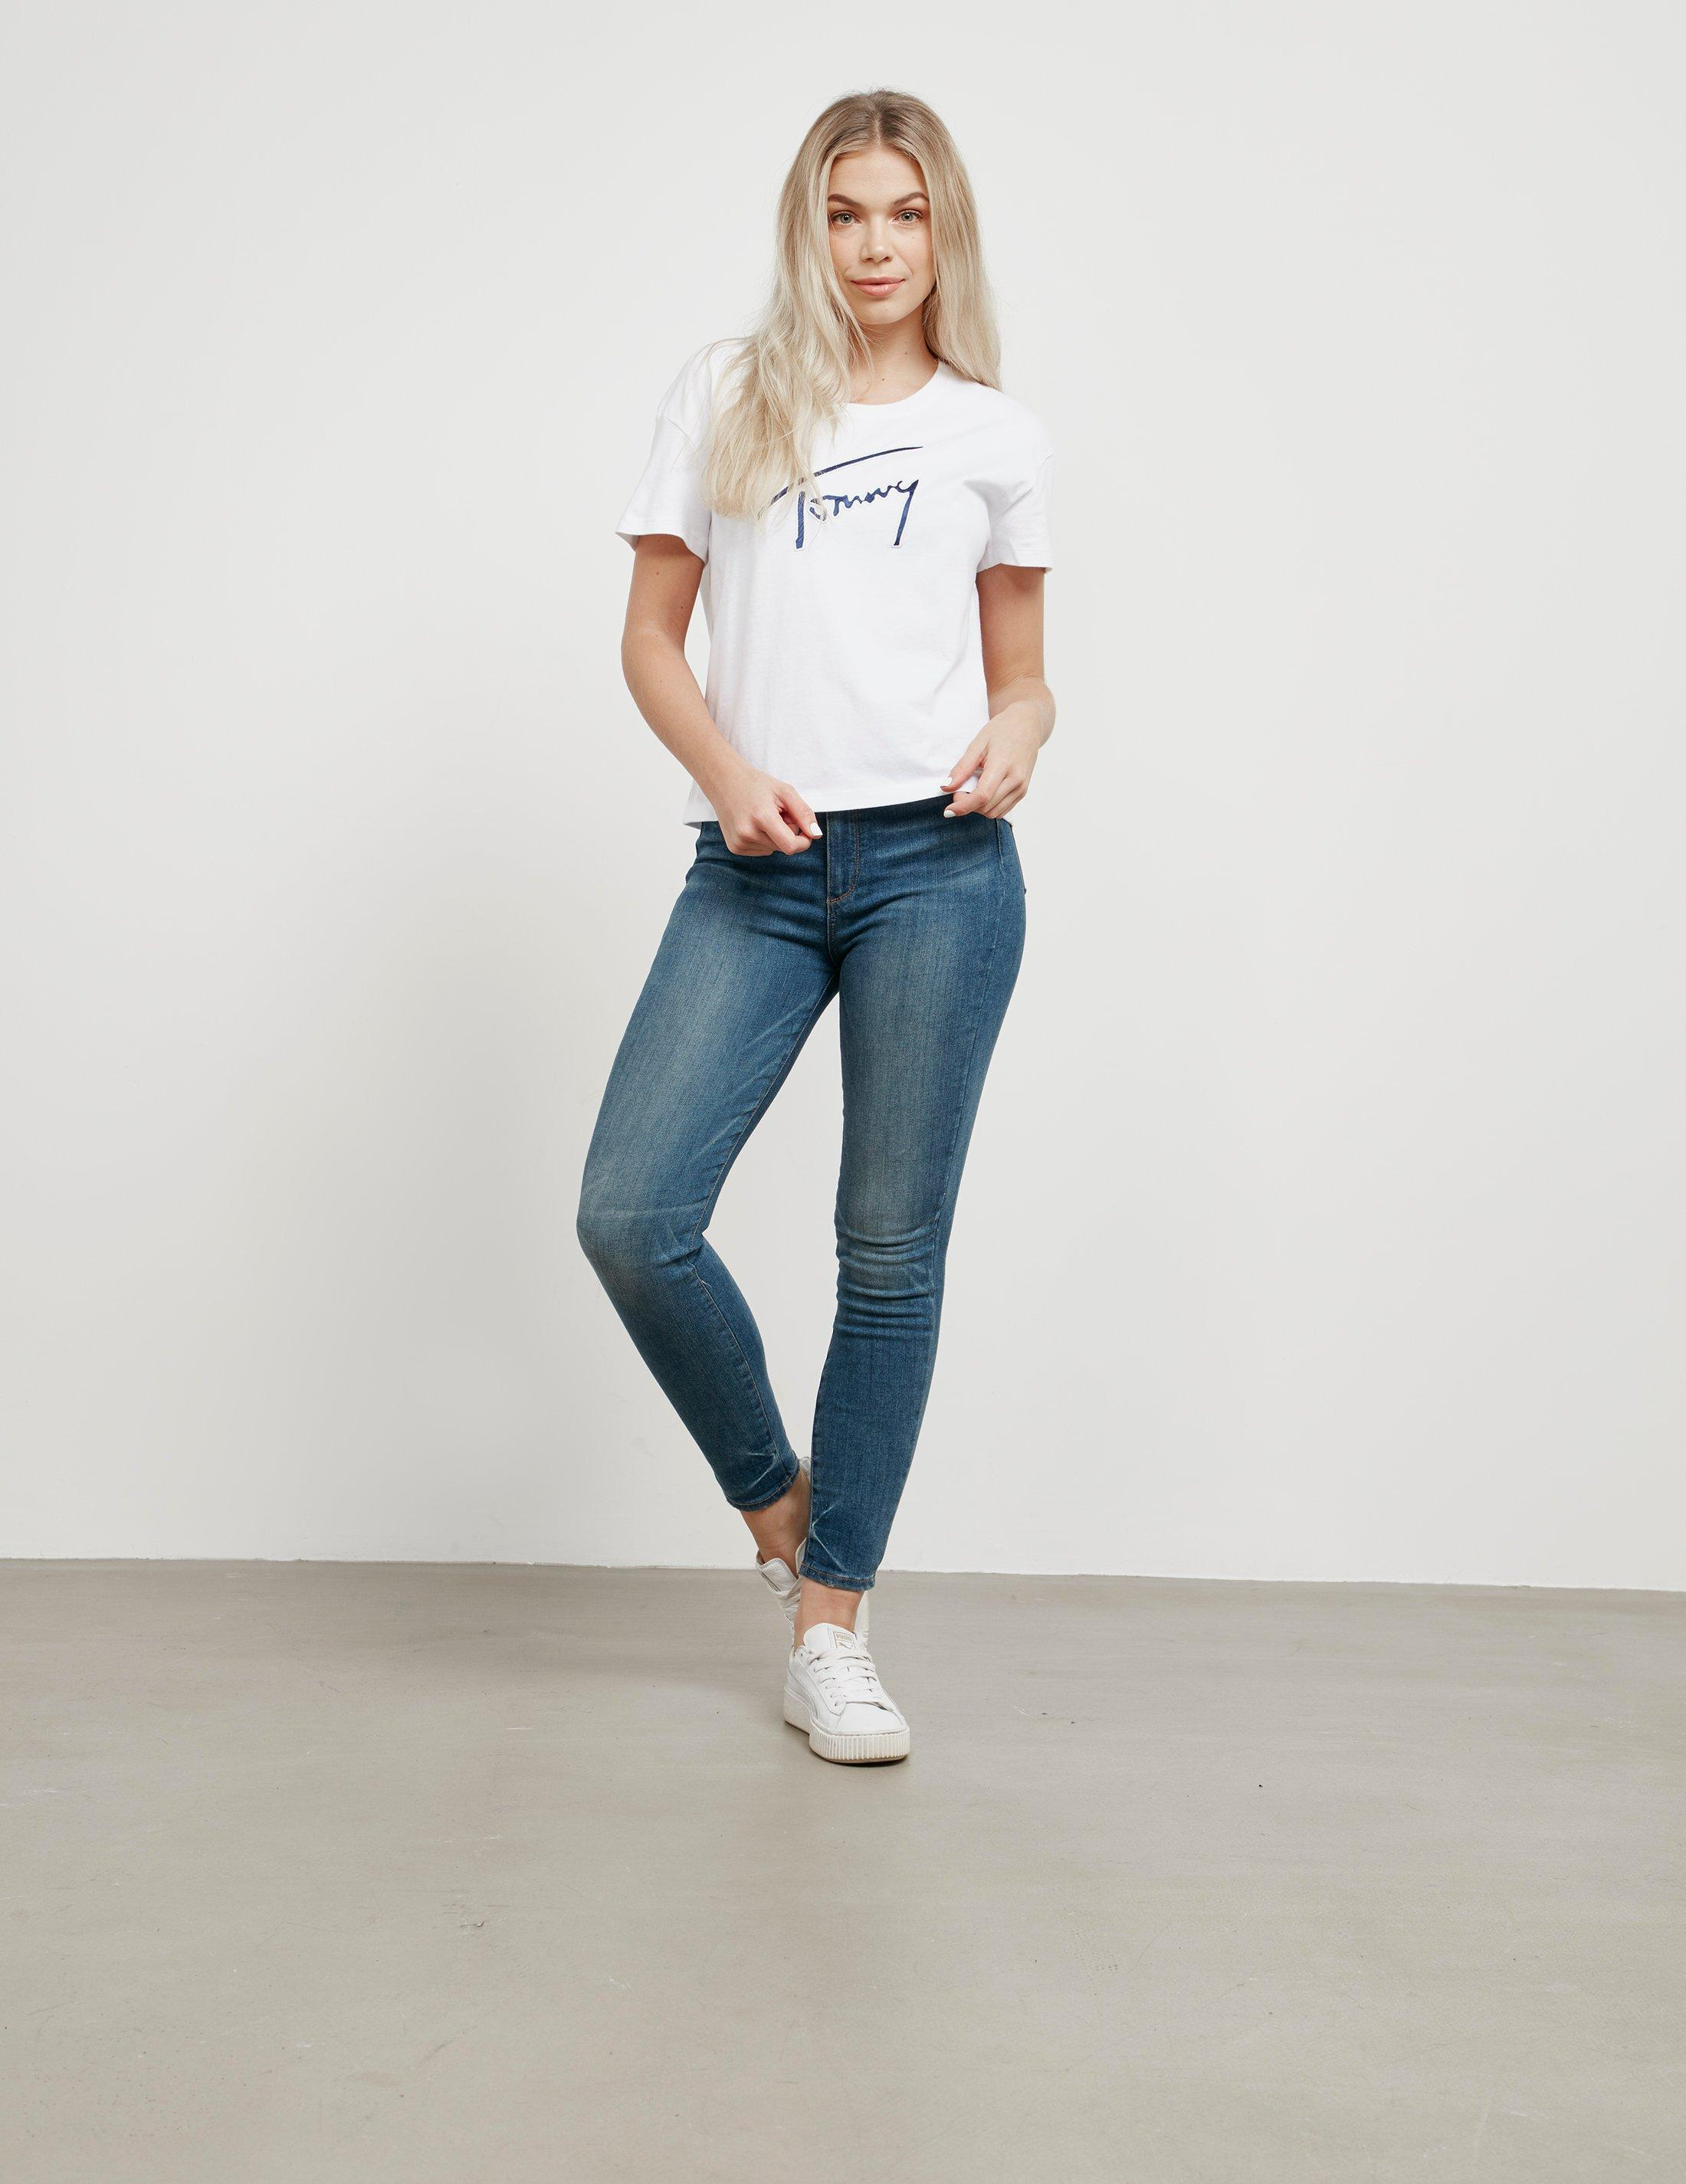 db0632357 Lyst - Tommy Hilfiger Signature Satin Short Sleeve T-shirt White in White